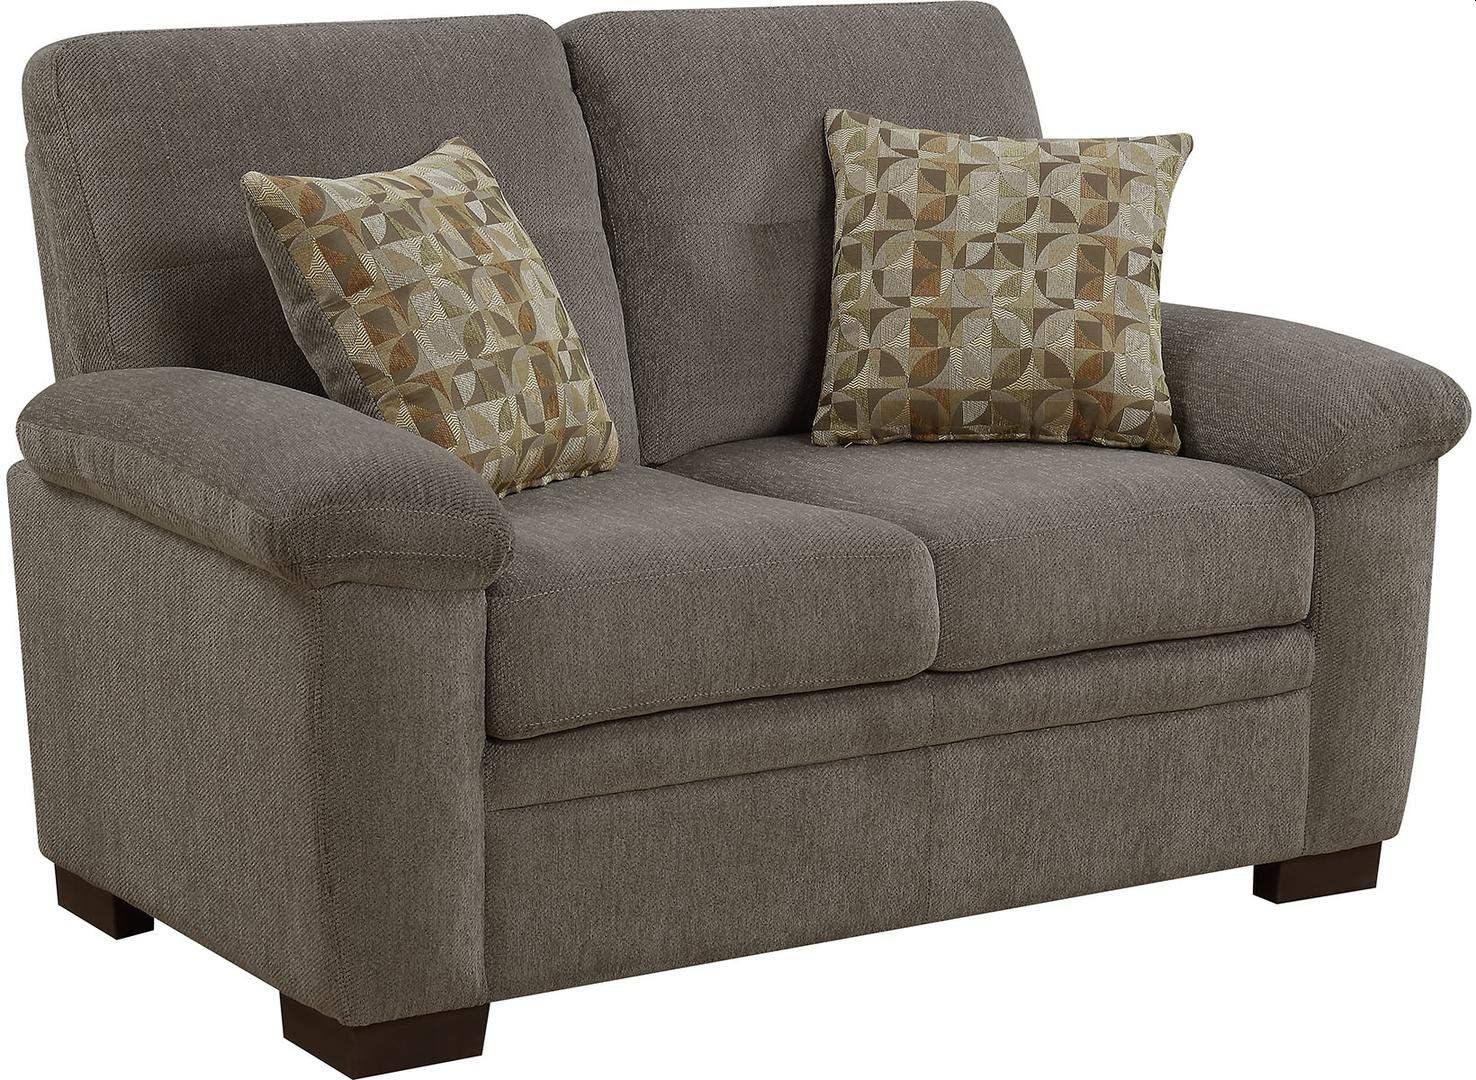 Casual Loveseat in Oatmeal Chenille Fabric